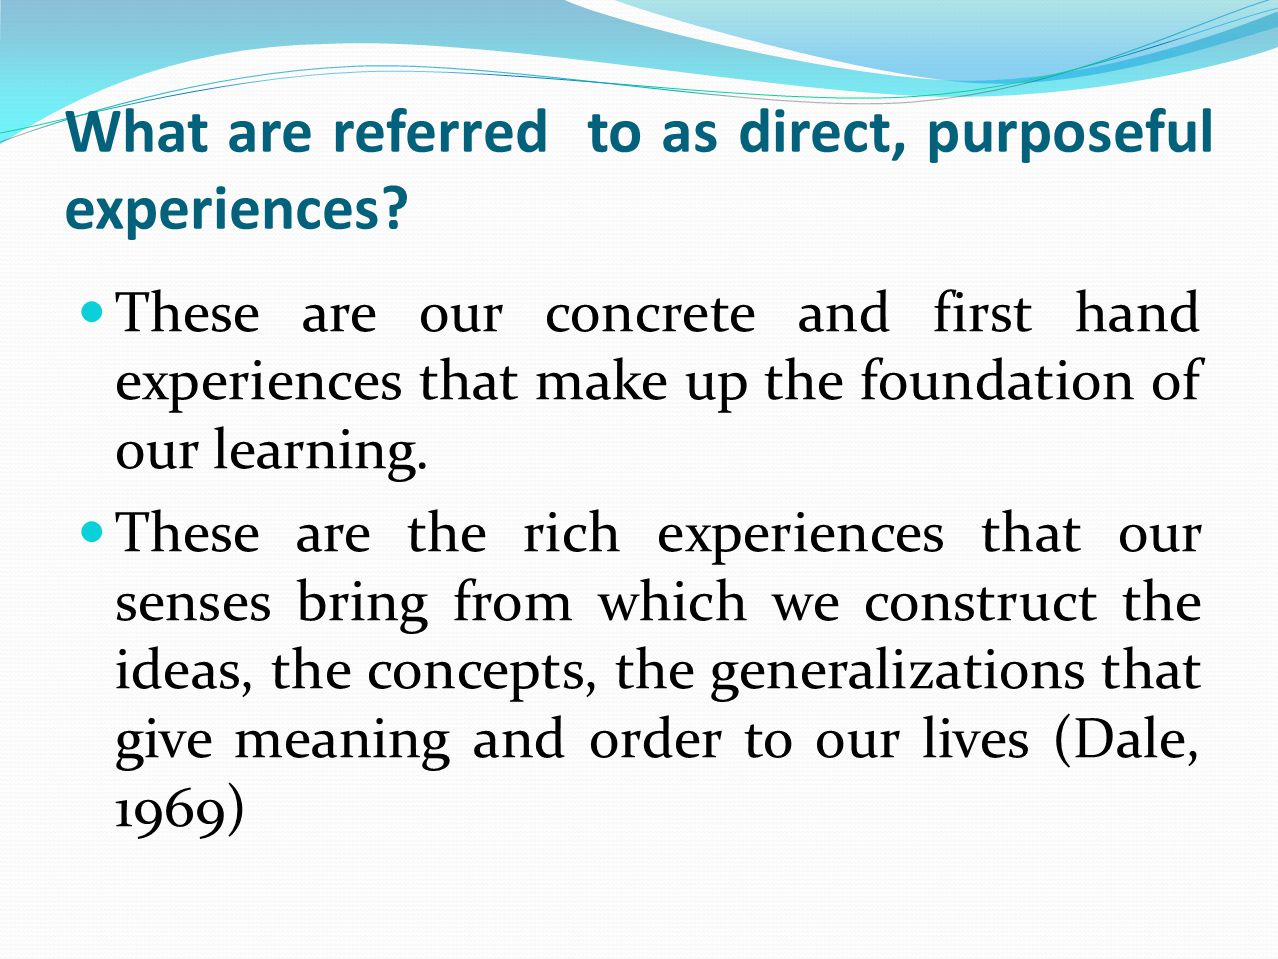 What are referred to as direct, purposeful experiences